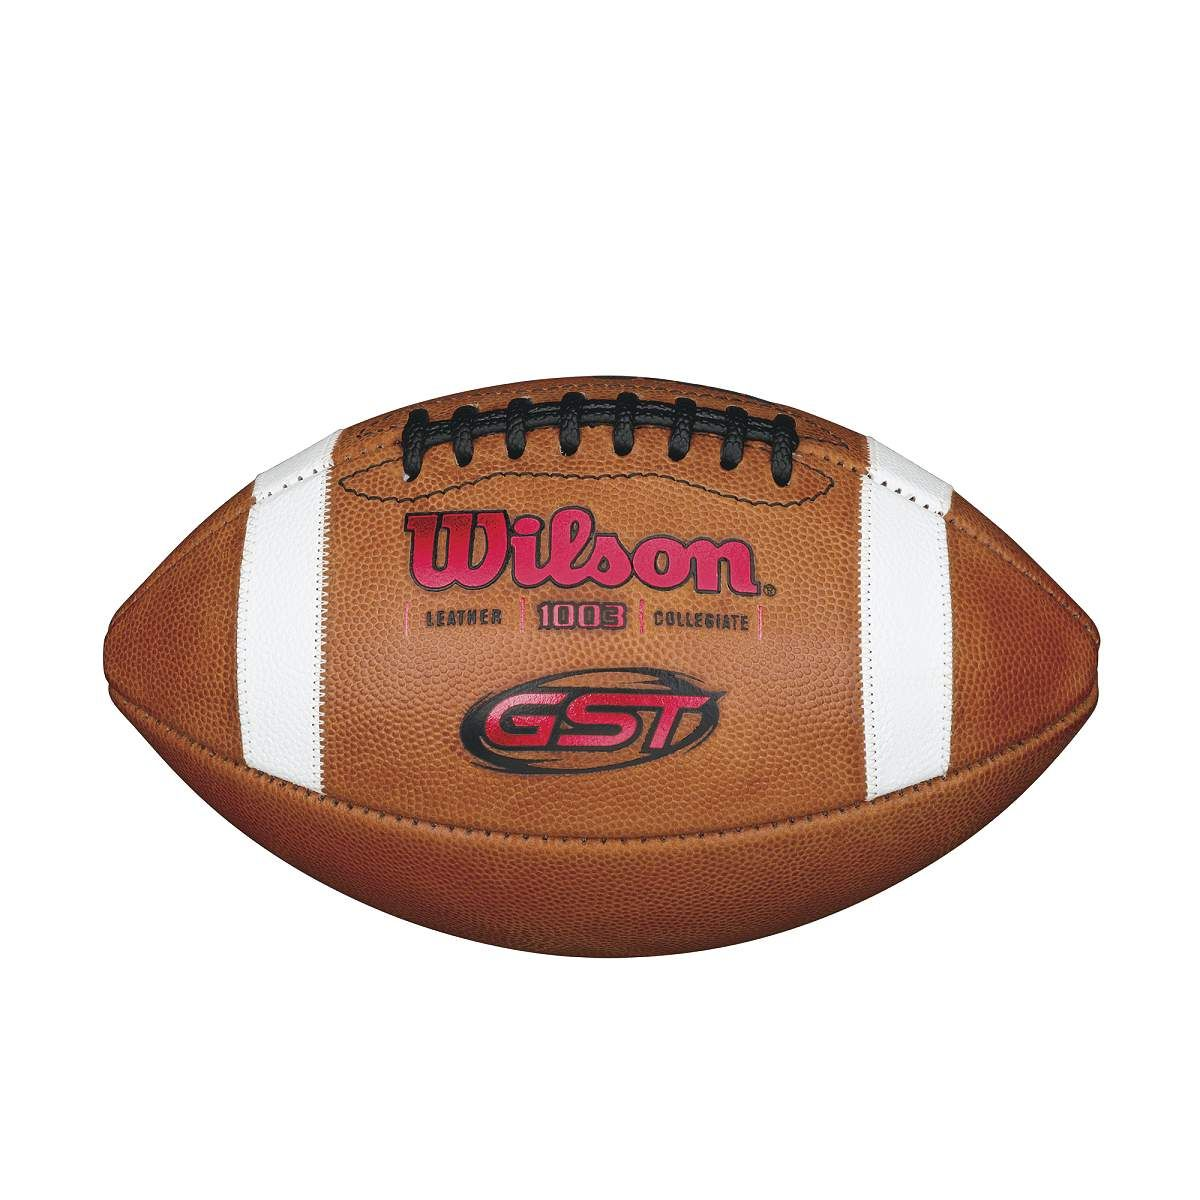 The wilson gst football is the preferred ball of over 180